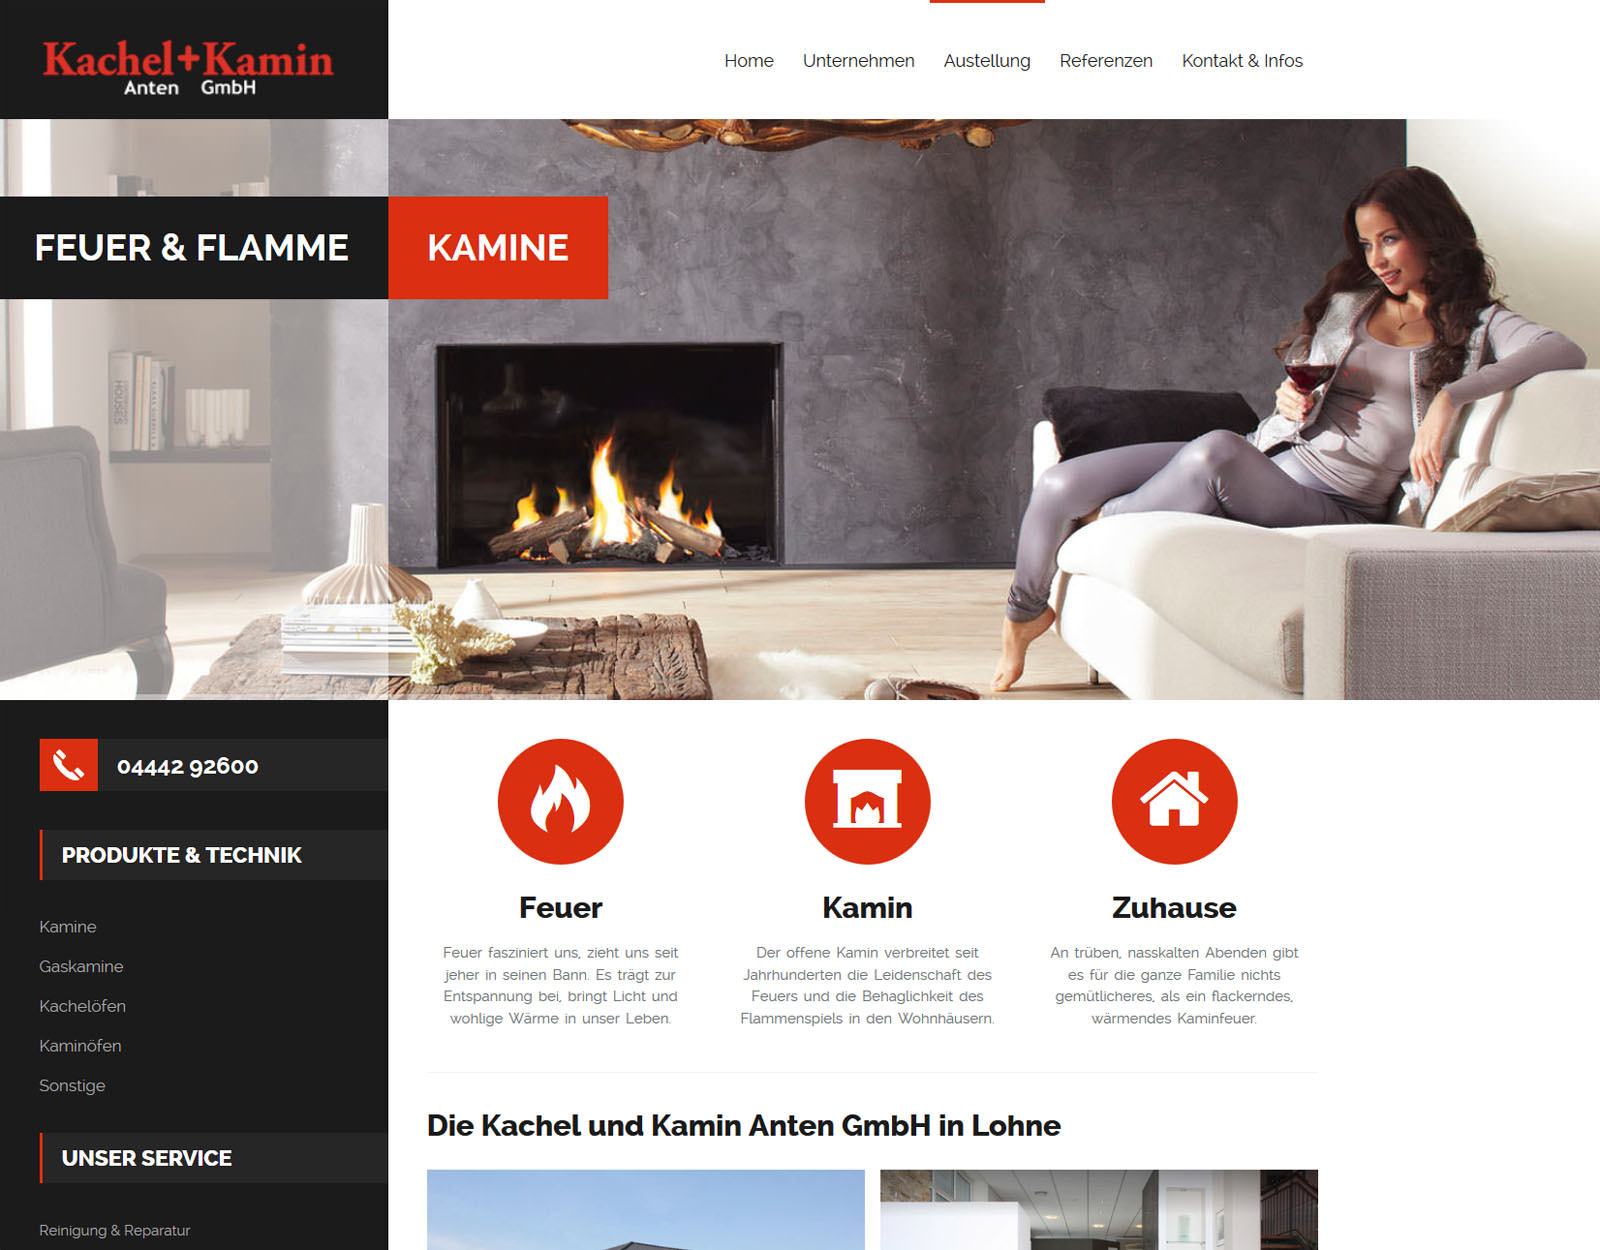 Marketing & Webdesign | Referenz Kachel+Kamin